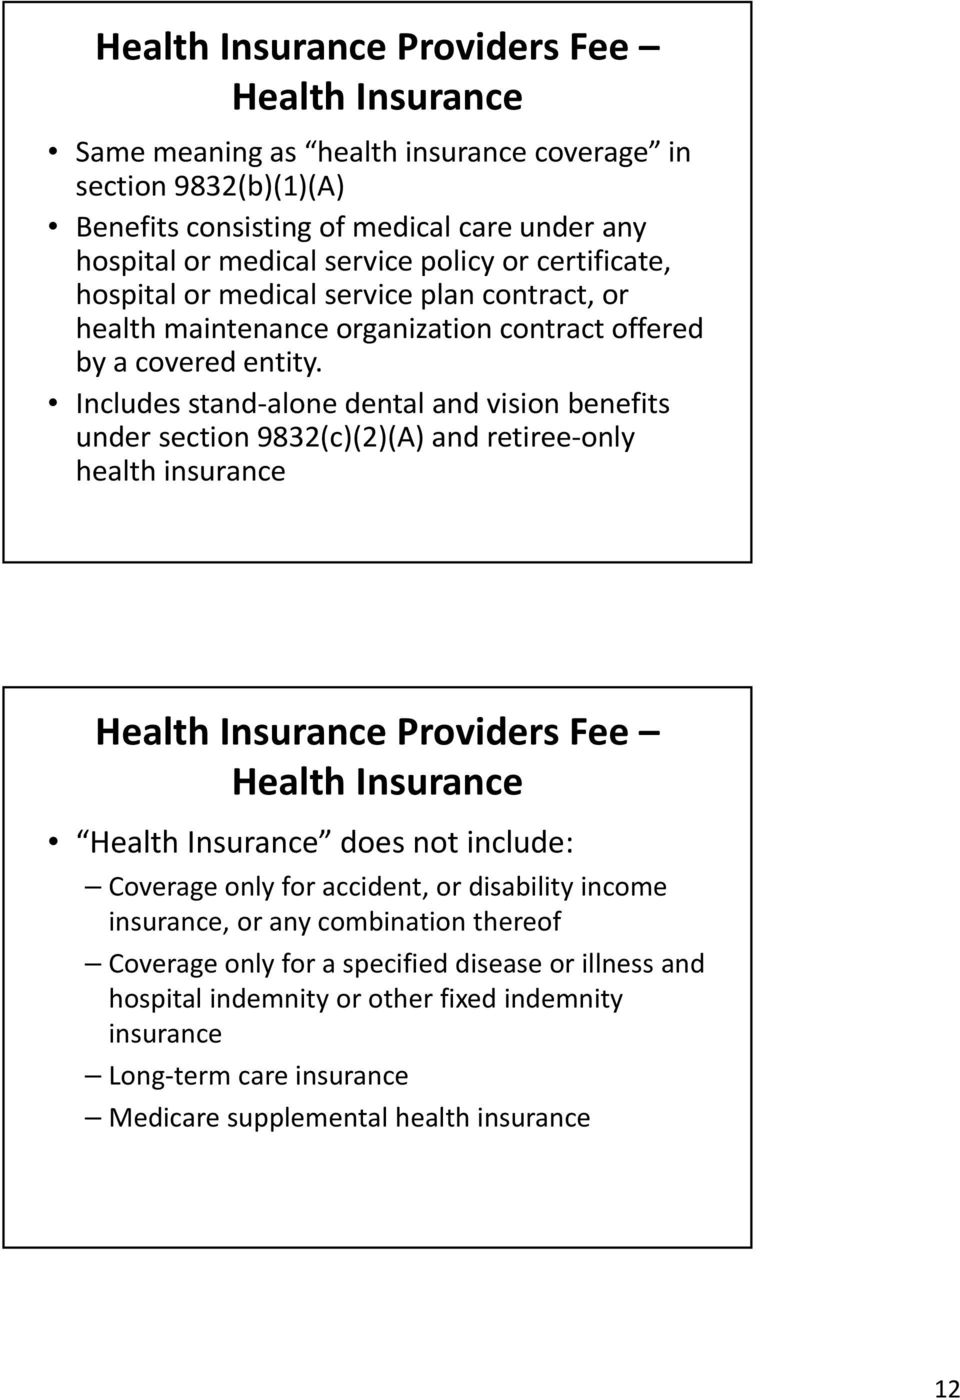 Includes stand alone dental and vision benefits under section 9832(c)(2)(A) and retiree only health insurance Health Insurance Providers Fee Health Insurance Health Insurance does not include: